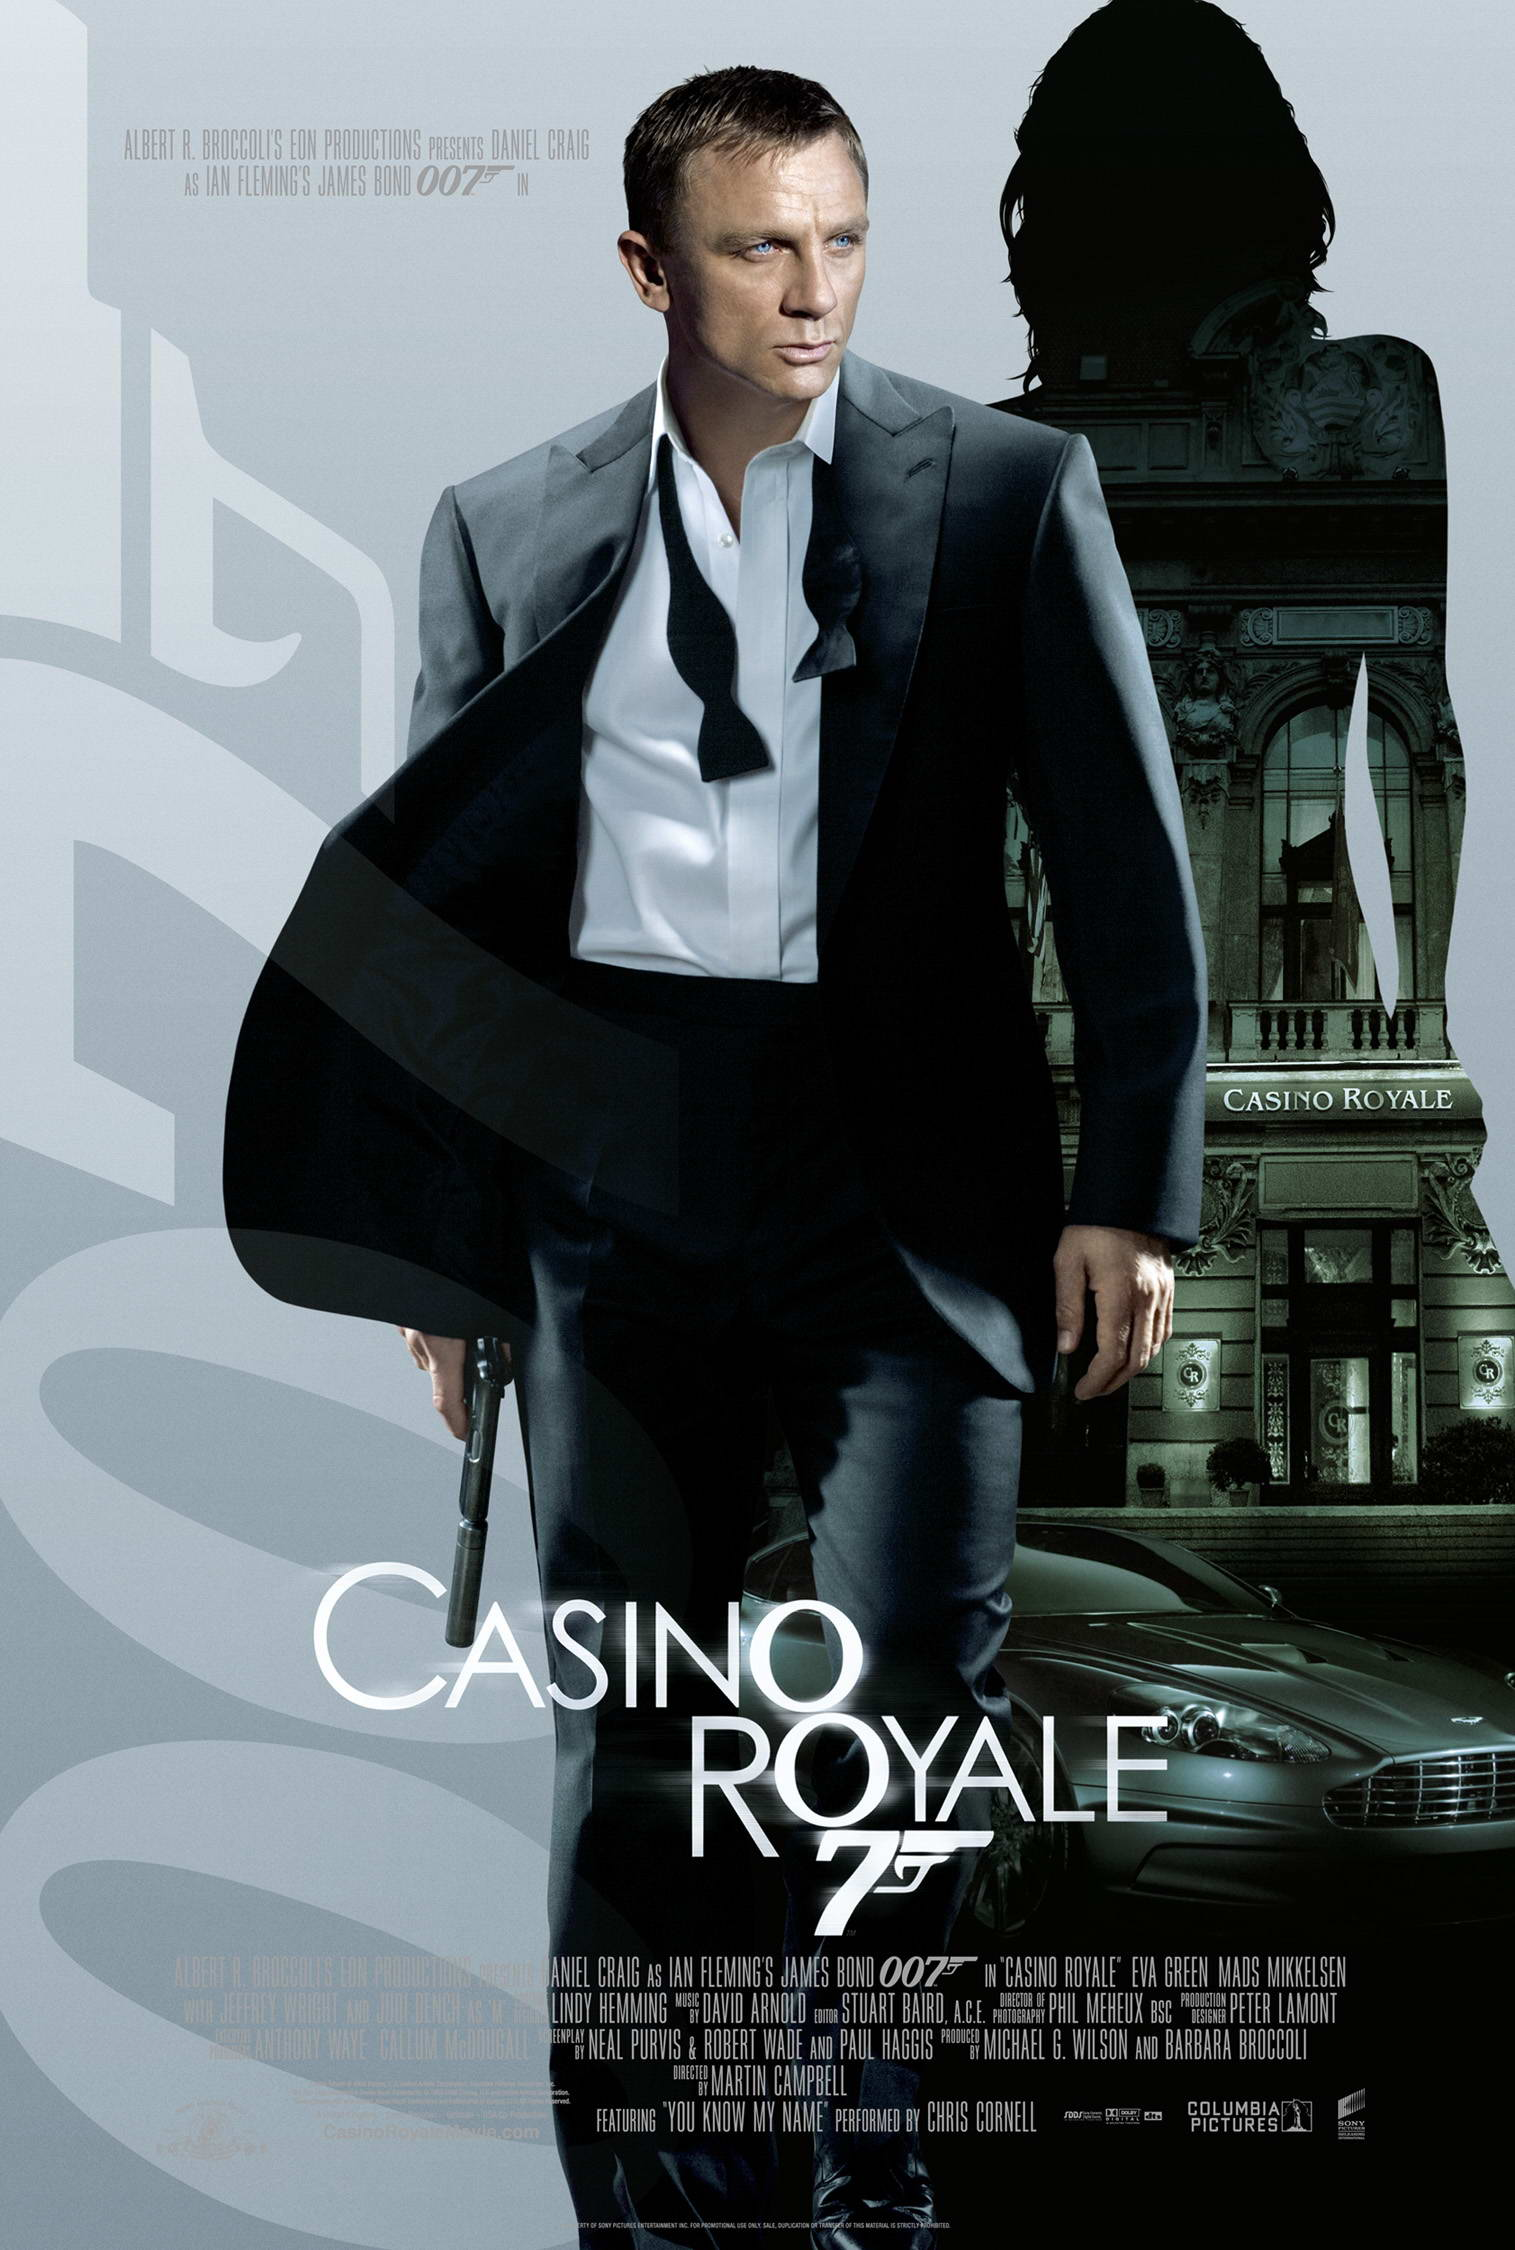 casino royale online movie free slizing hot